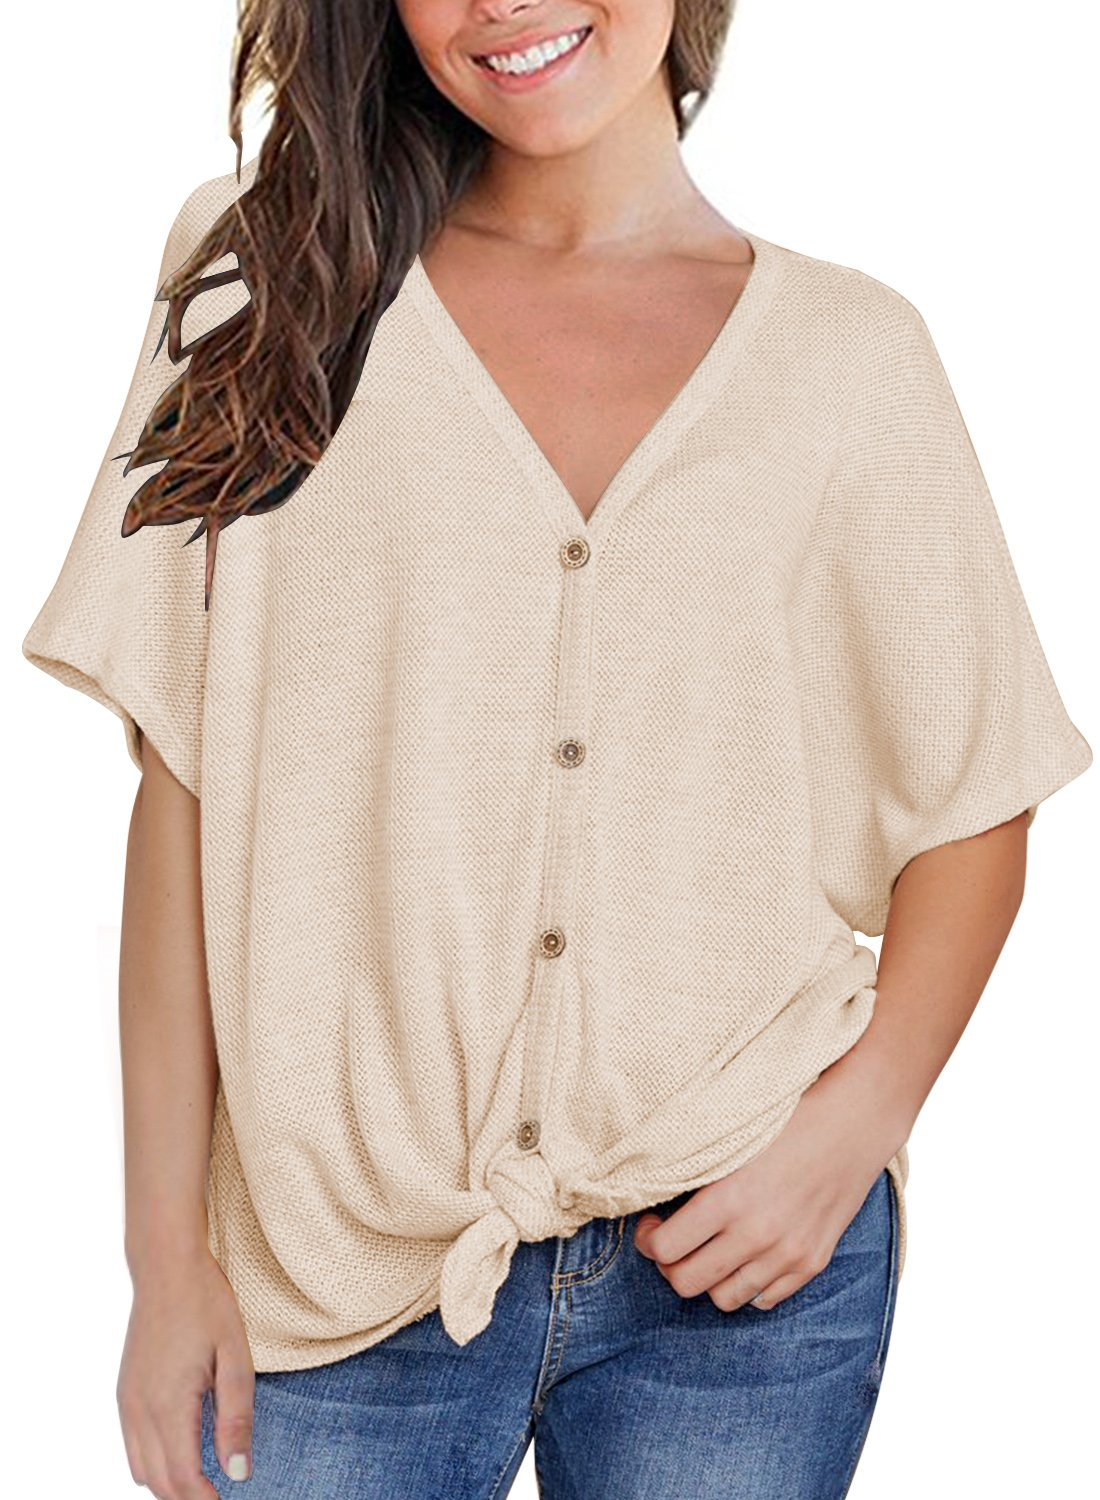 MIHOLL Womens Loose Blouse Short Sleeve V Neck Button Down T Shirts Tie Front Knot Casual Tops (Medium, Beige)